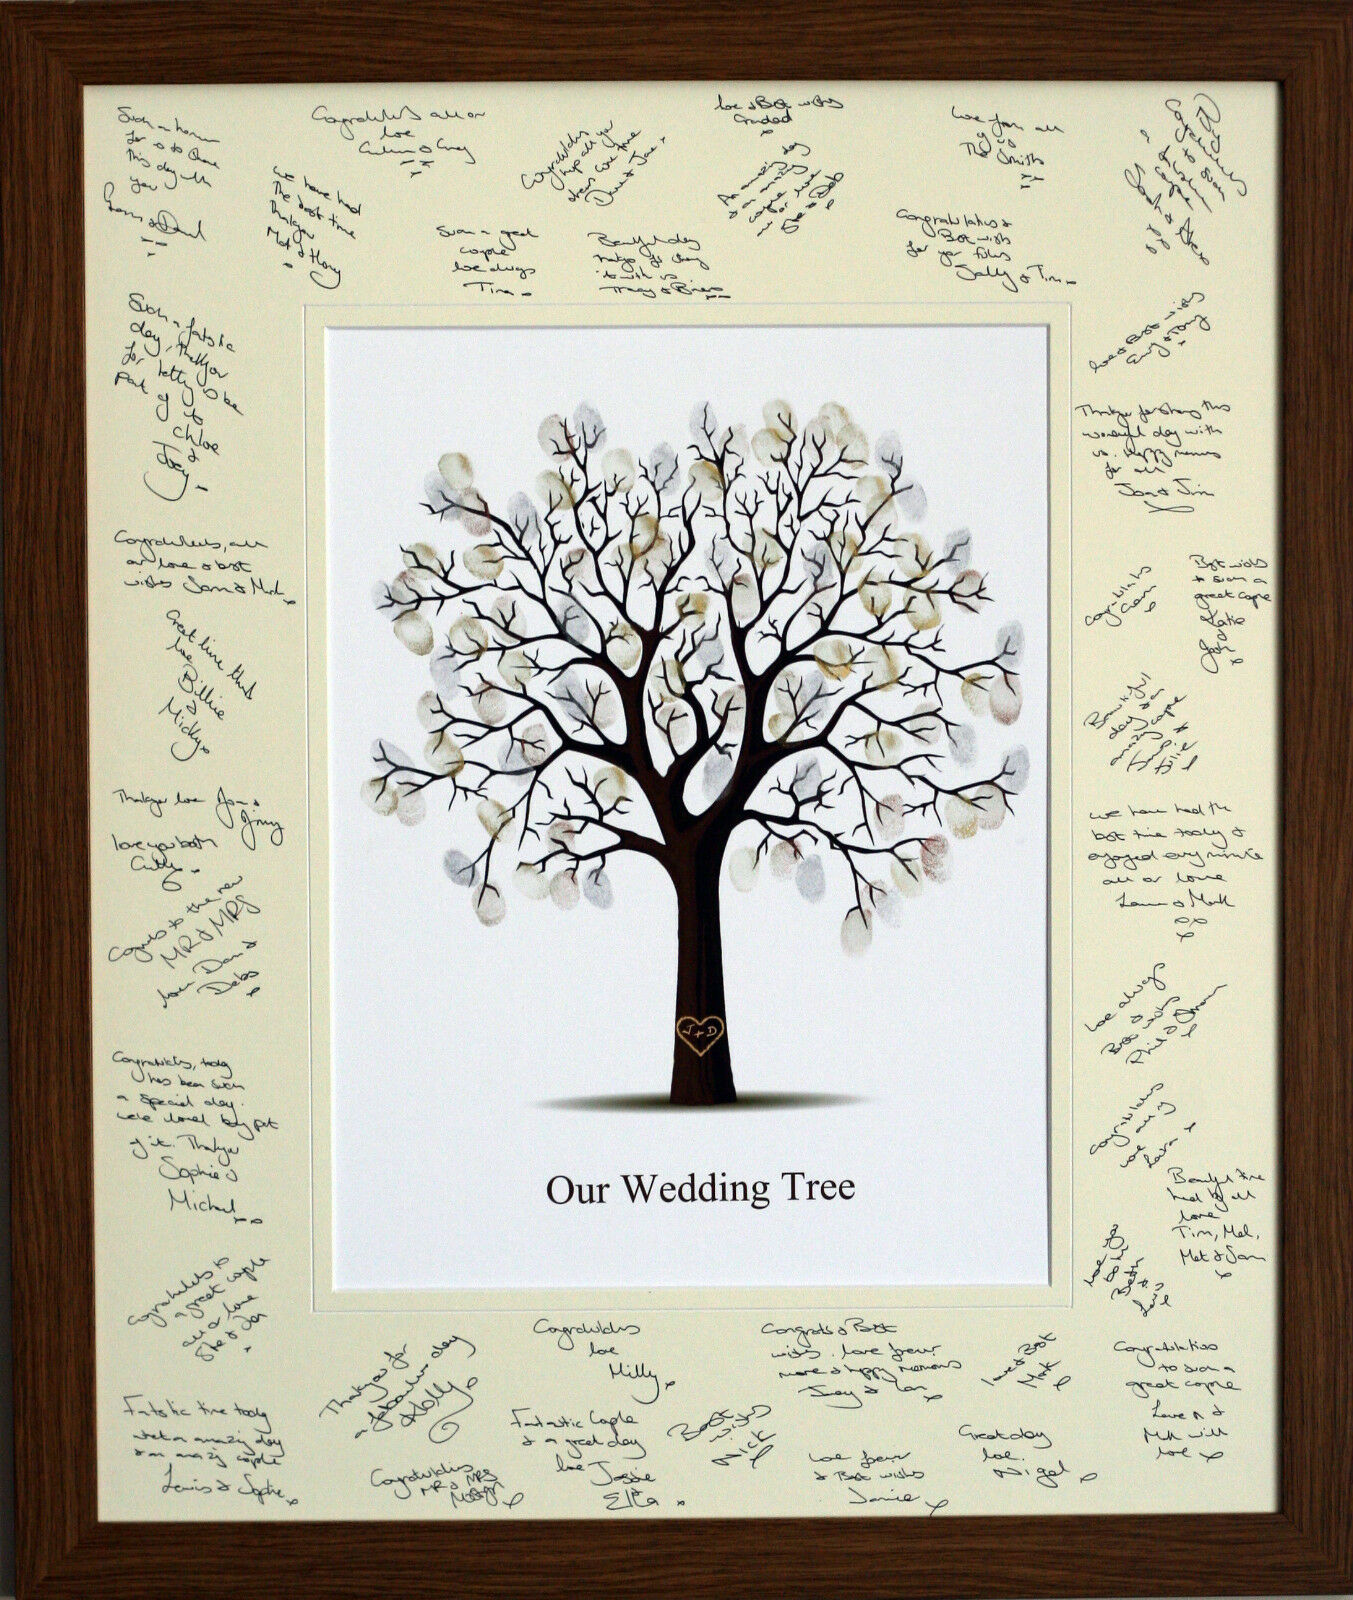 GUEST SIGNING SIGNATURE Frame with Fingerprint Tree - Wedding ...